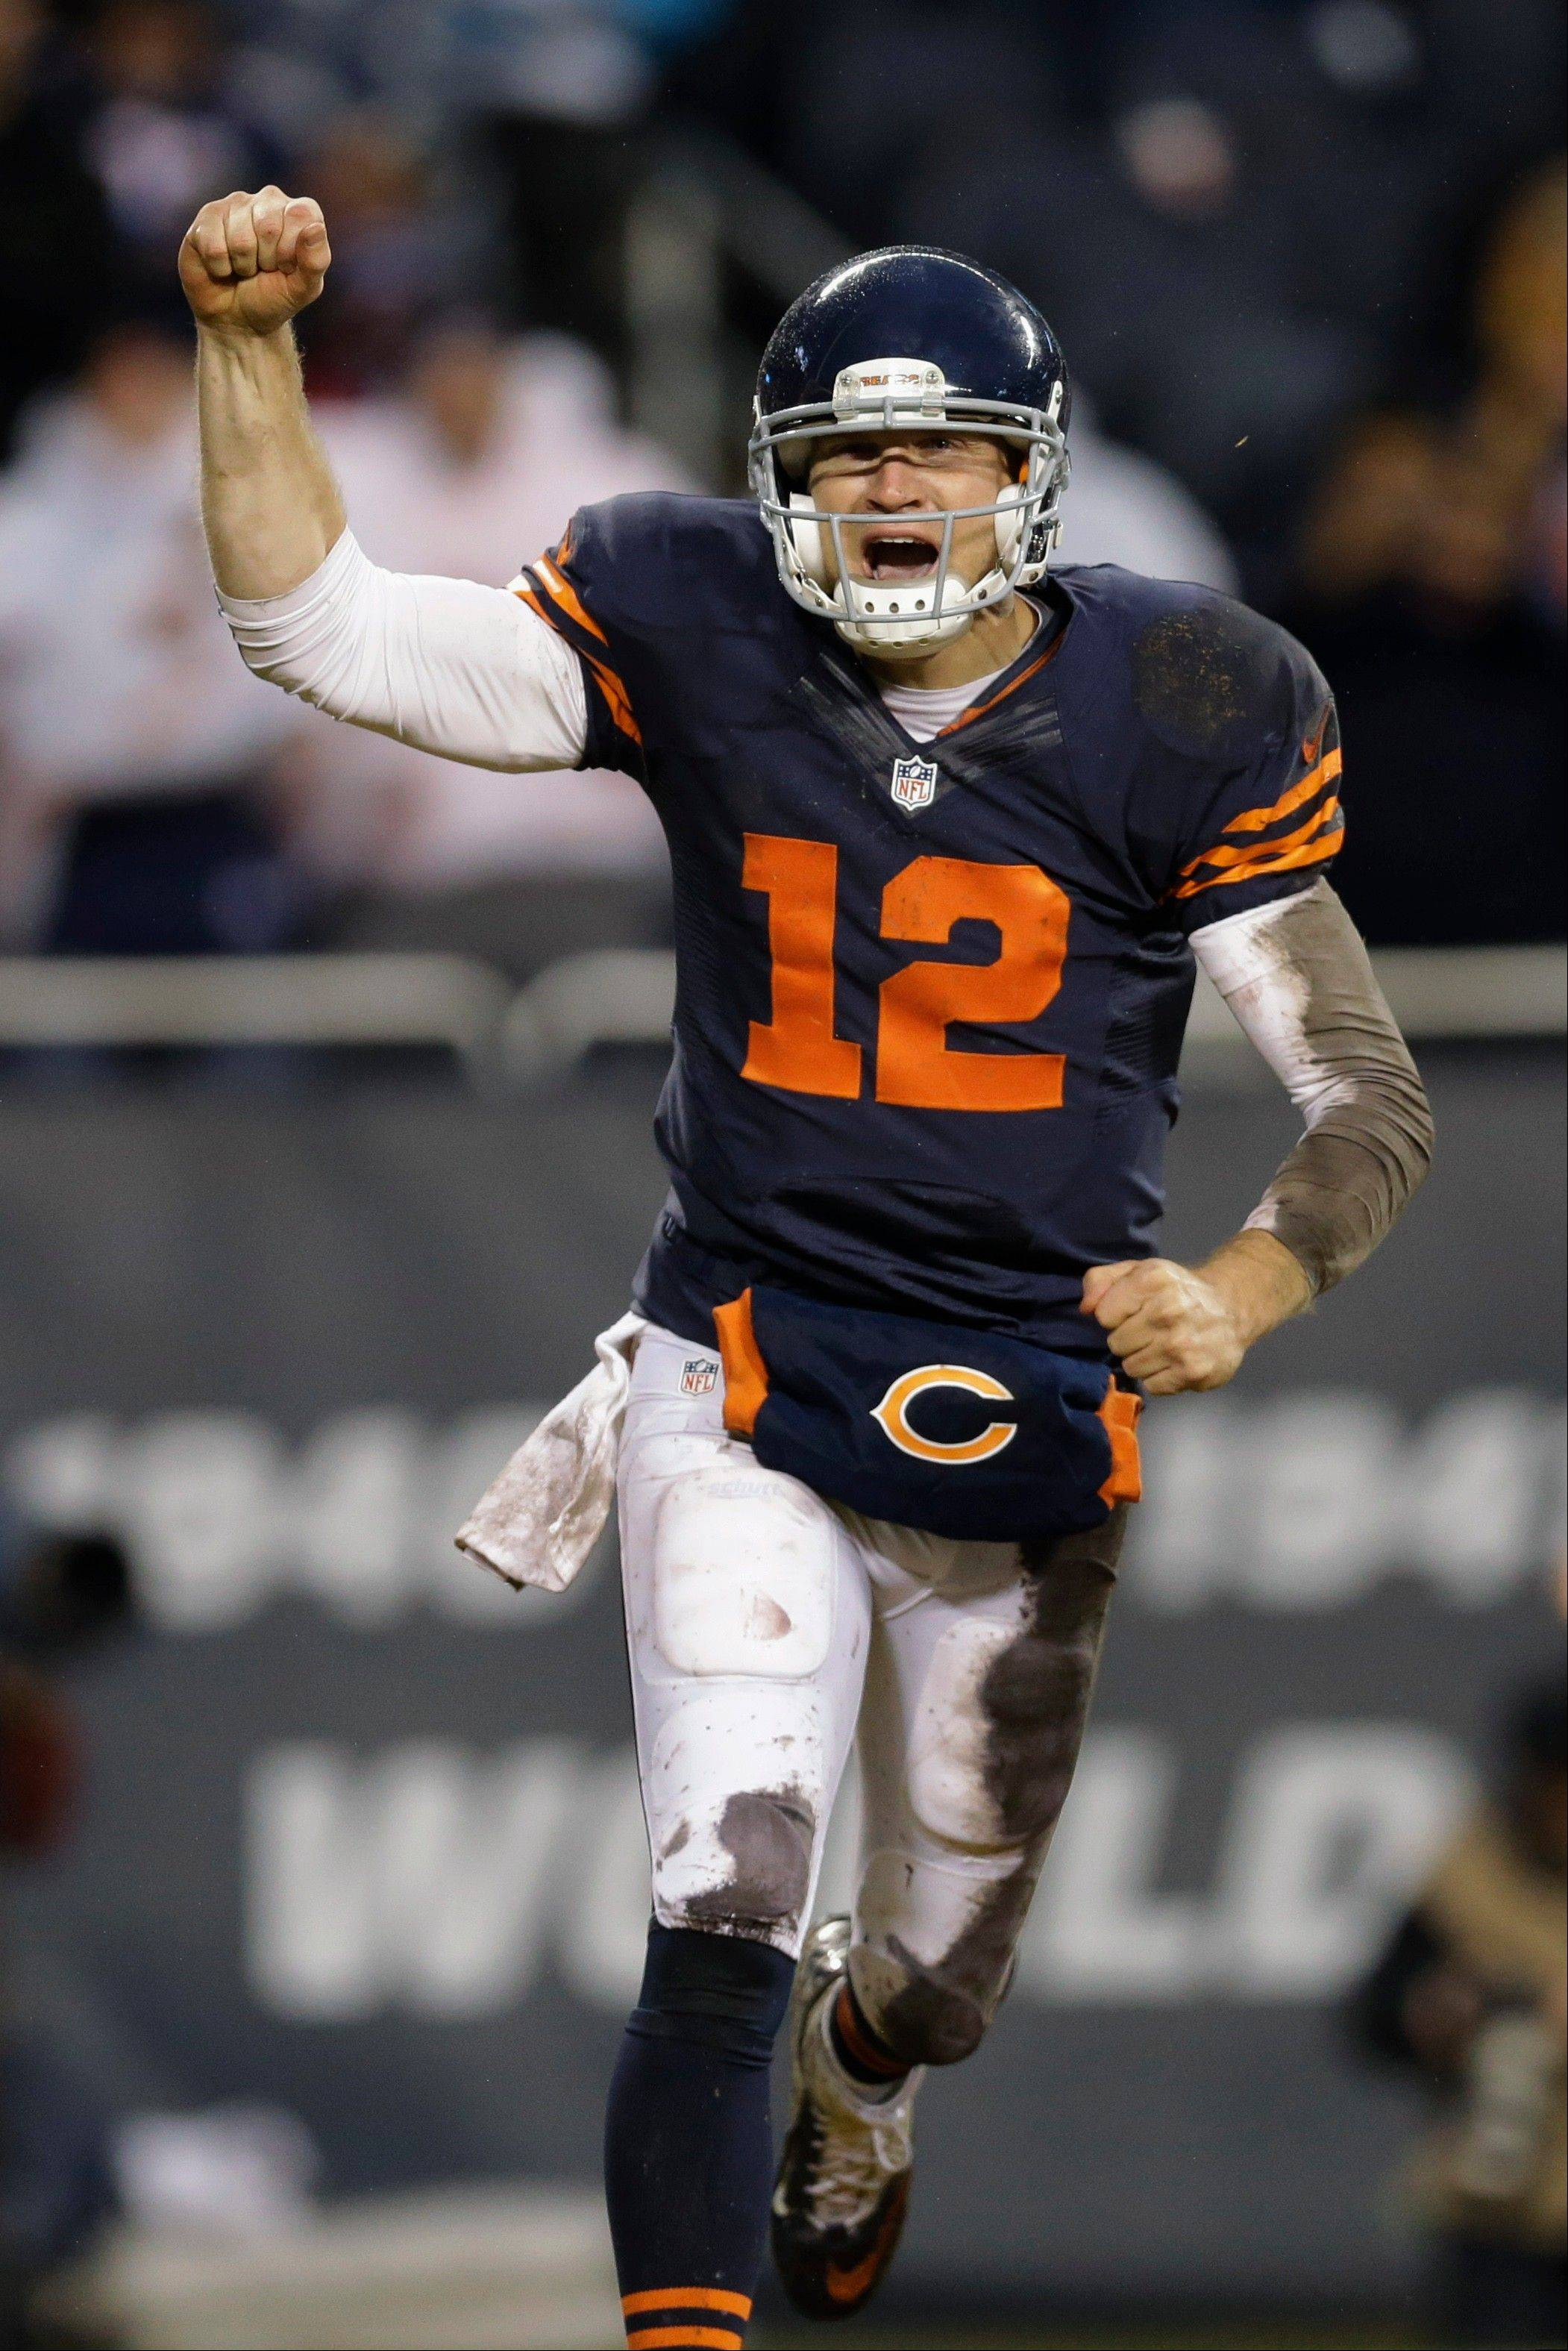 Bears quarterback Josh McCown (12) celebrates after throwing a touchdown pass to running back Matt Forte (22) during the second half of an NFL football game against the Baltimore Ravens, Sunday, Nov. 17, 2013, in Chicago.